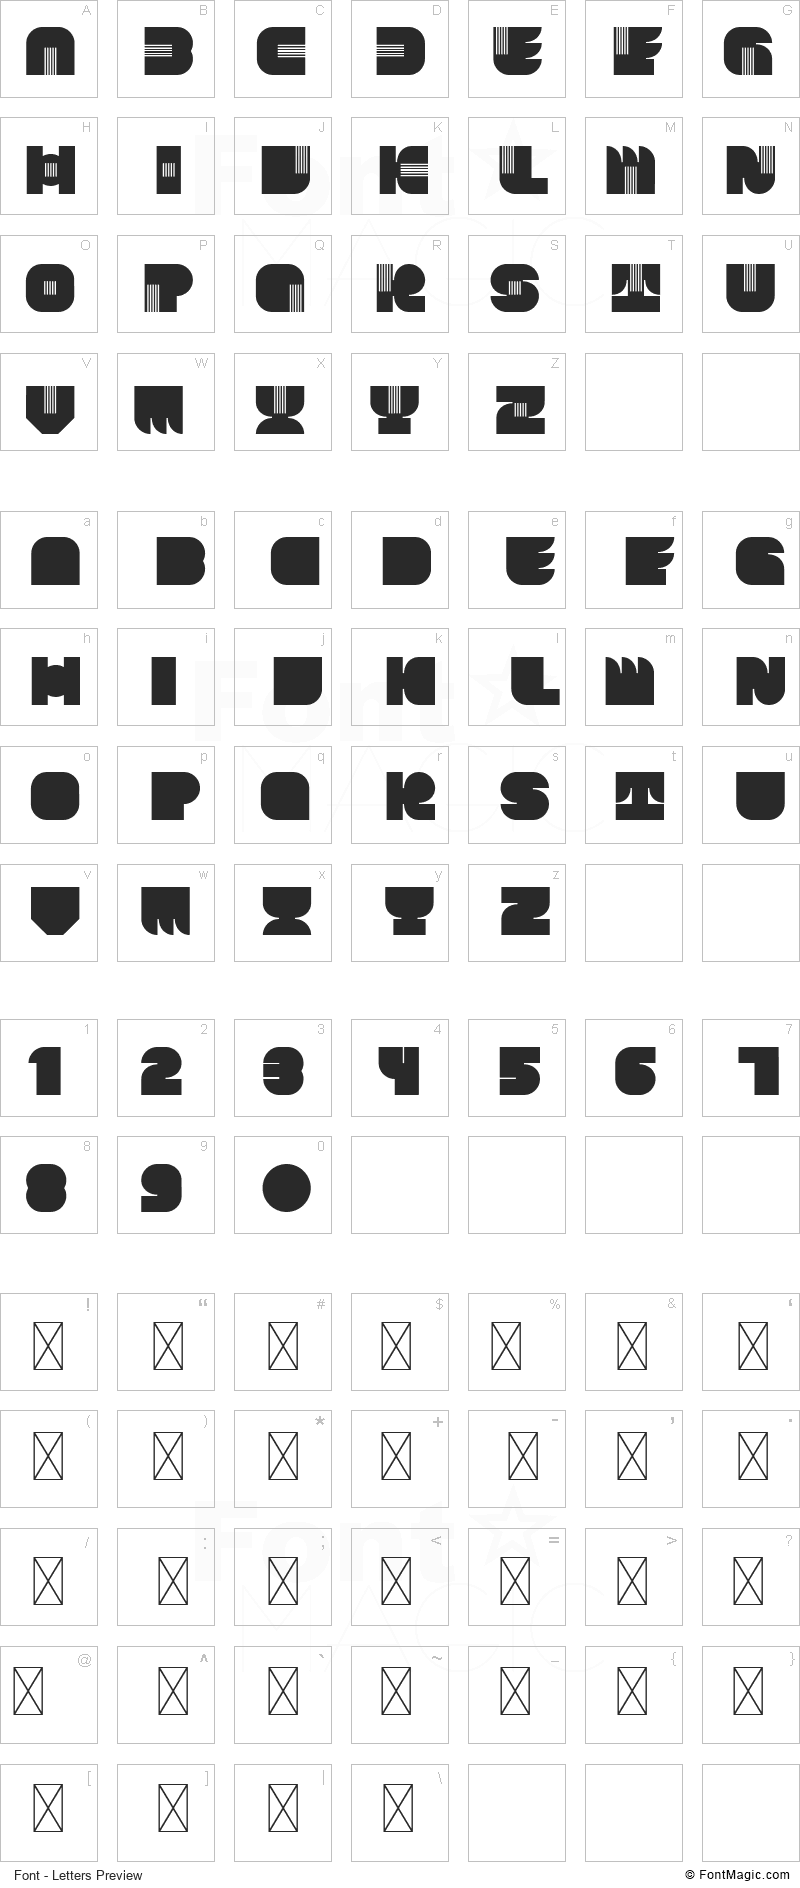 Karl Zone Font - All Latters Preview Chart